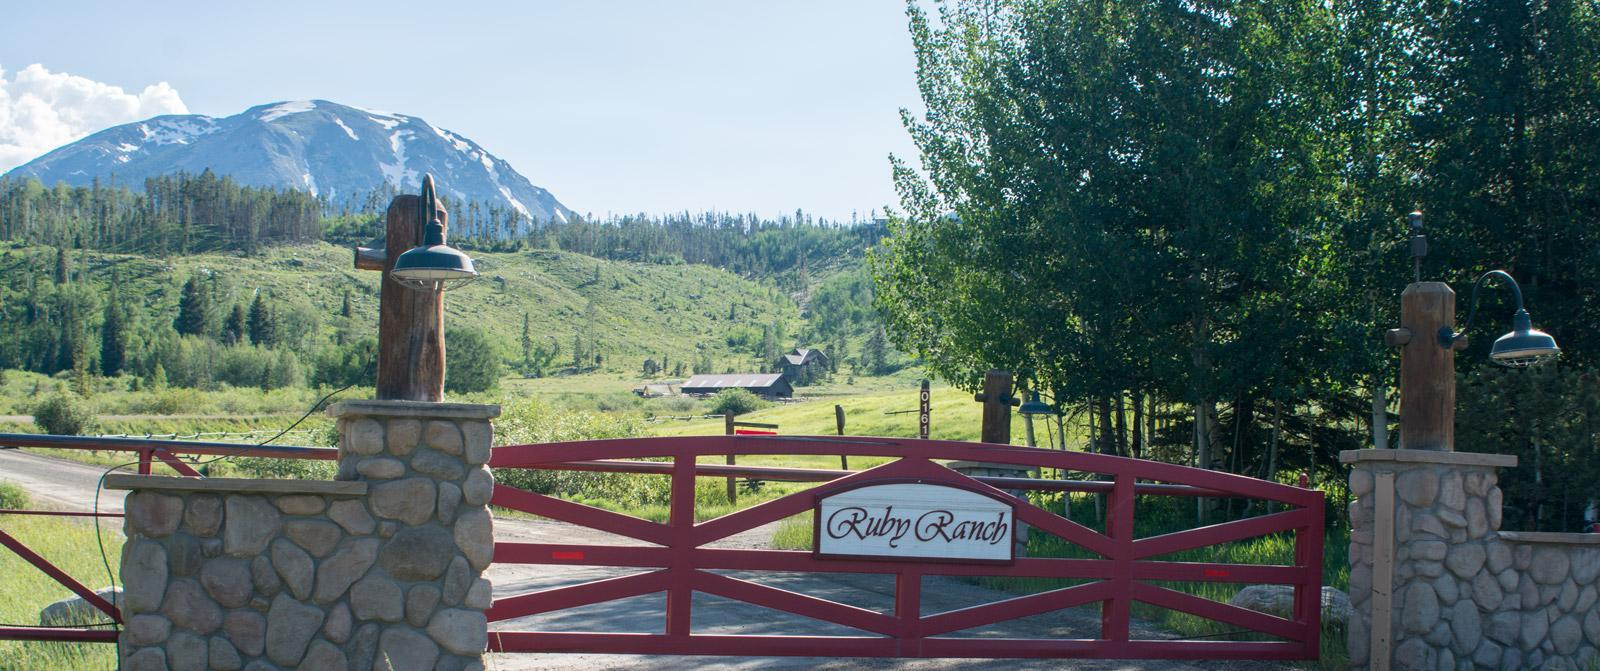 Ruby Ranch, above Silverhthorne backing national forest